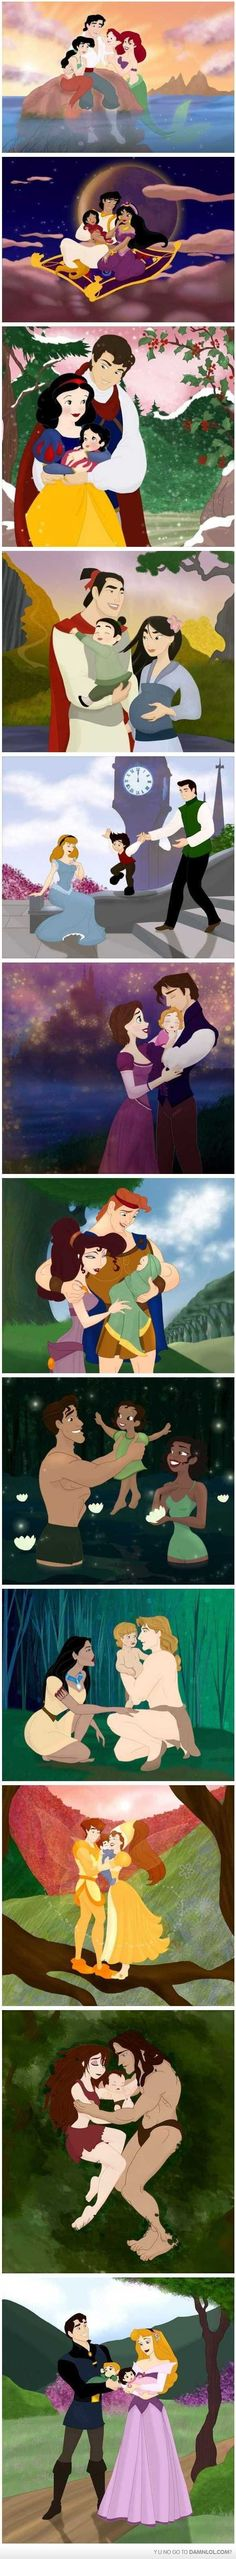 Happily Ever After Disney Films, The Disney Princesses Family | Totally Love It